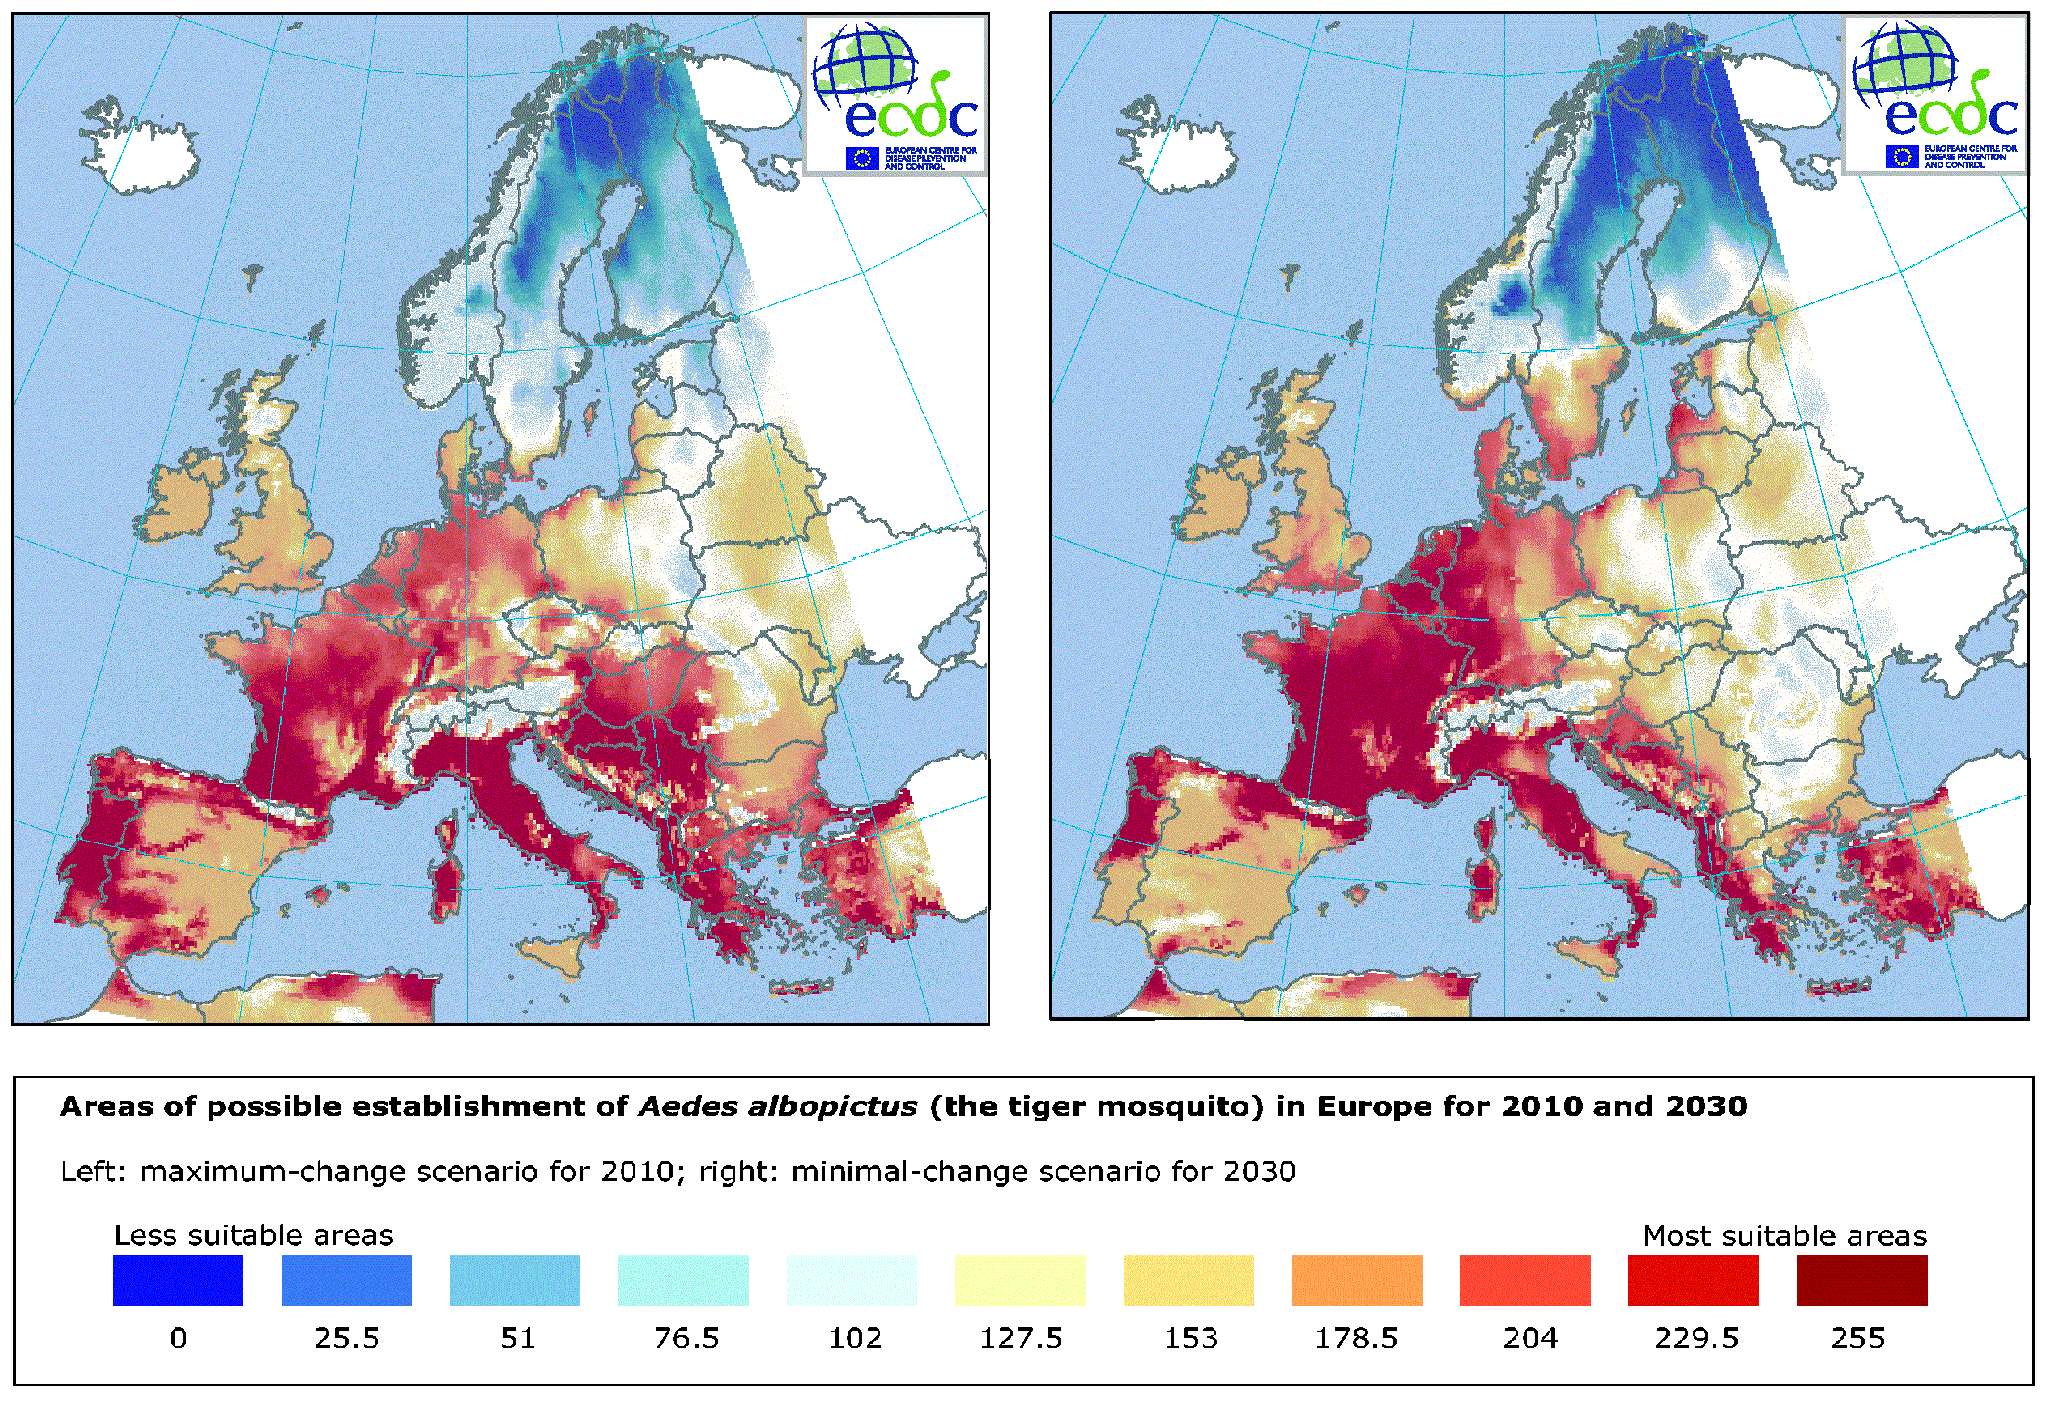 Areas of possible establishment of Aedes albopictus (the tiger mosquito) in Europe for 2010 and 2030